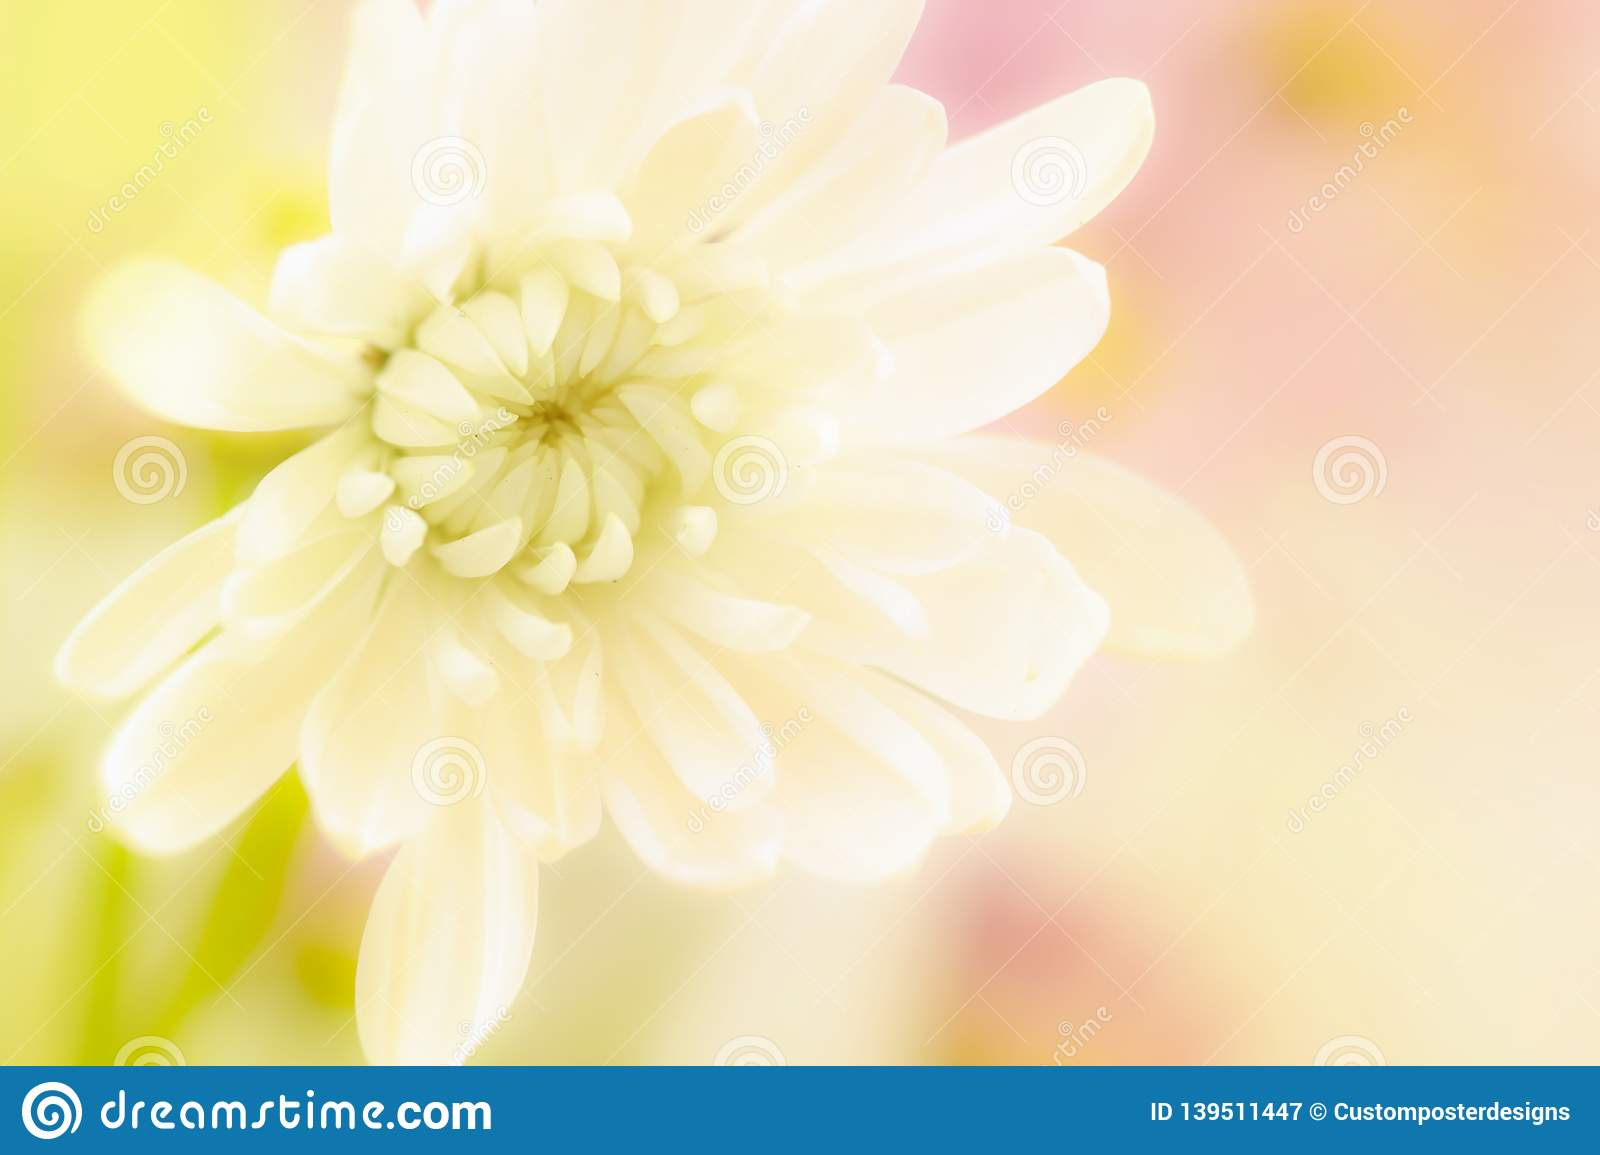 A beautiful white flower on a yellow and pink blurred background